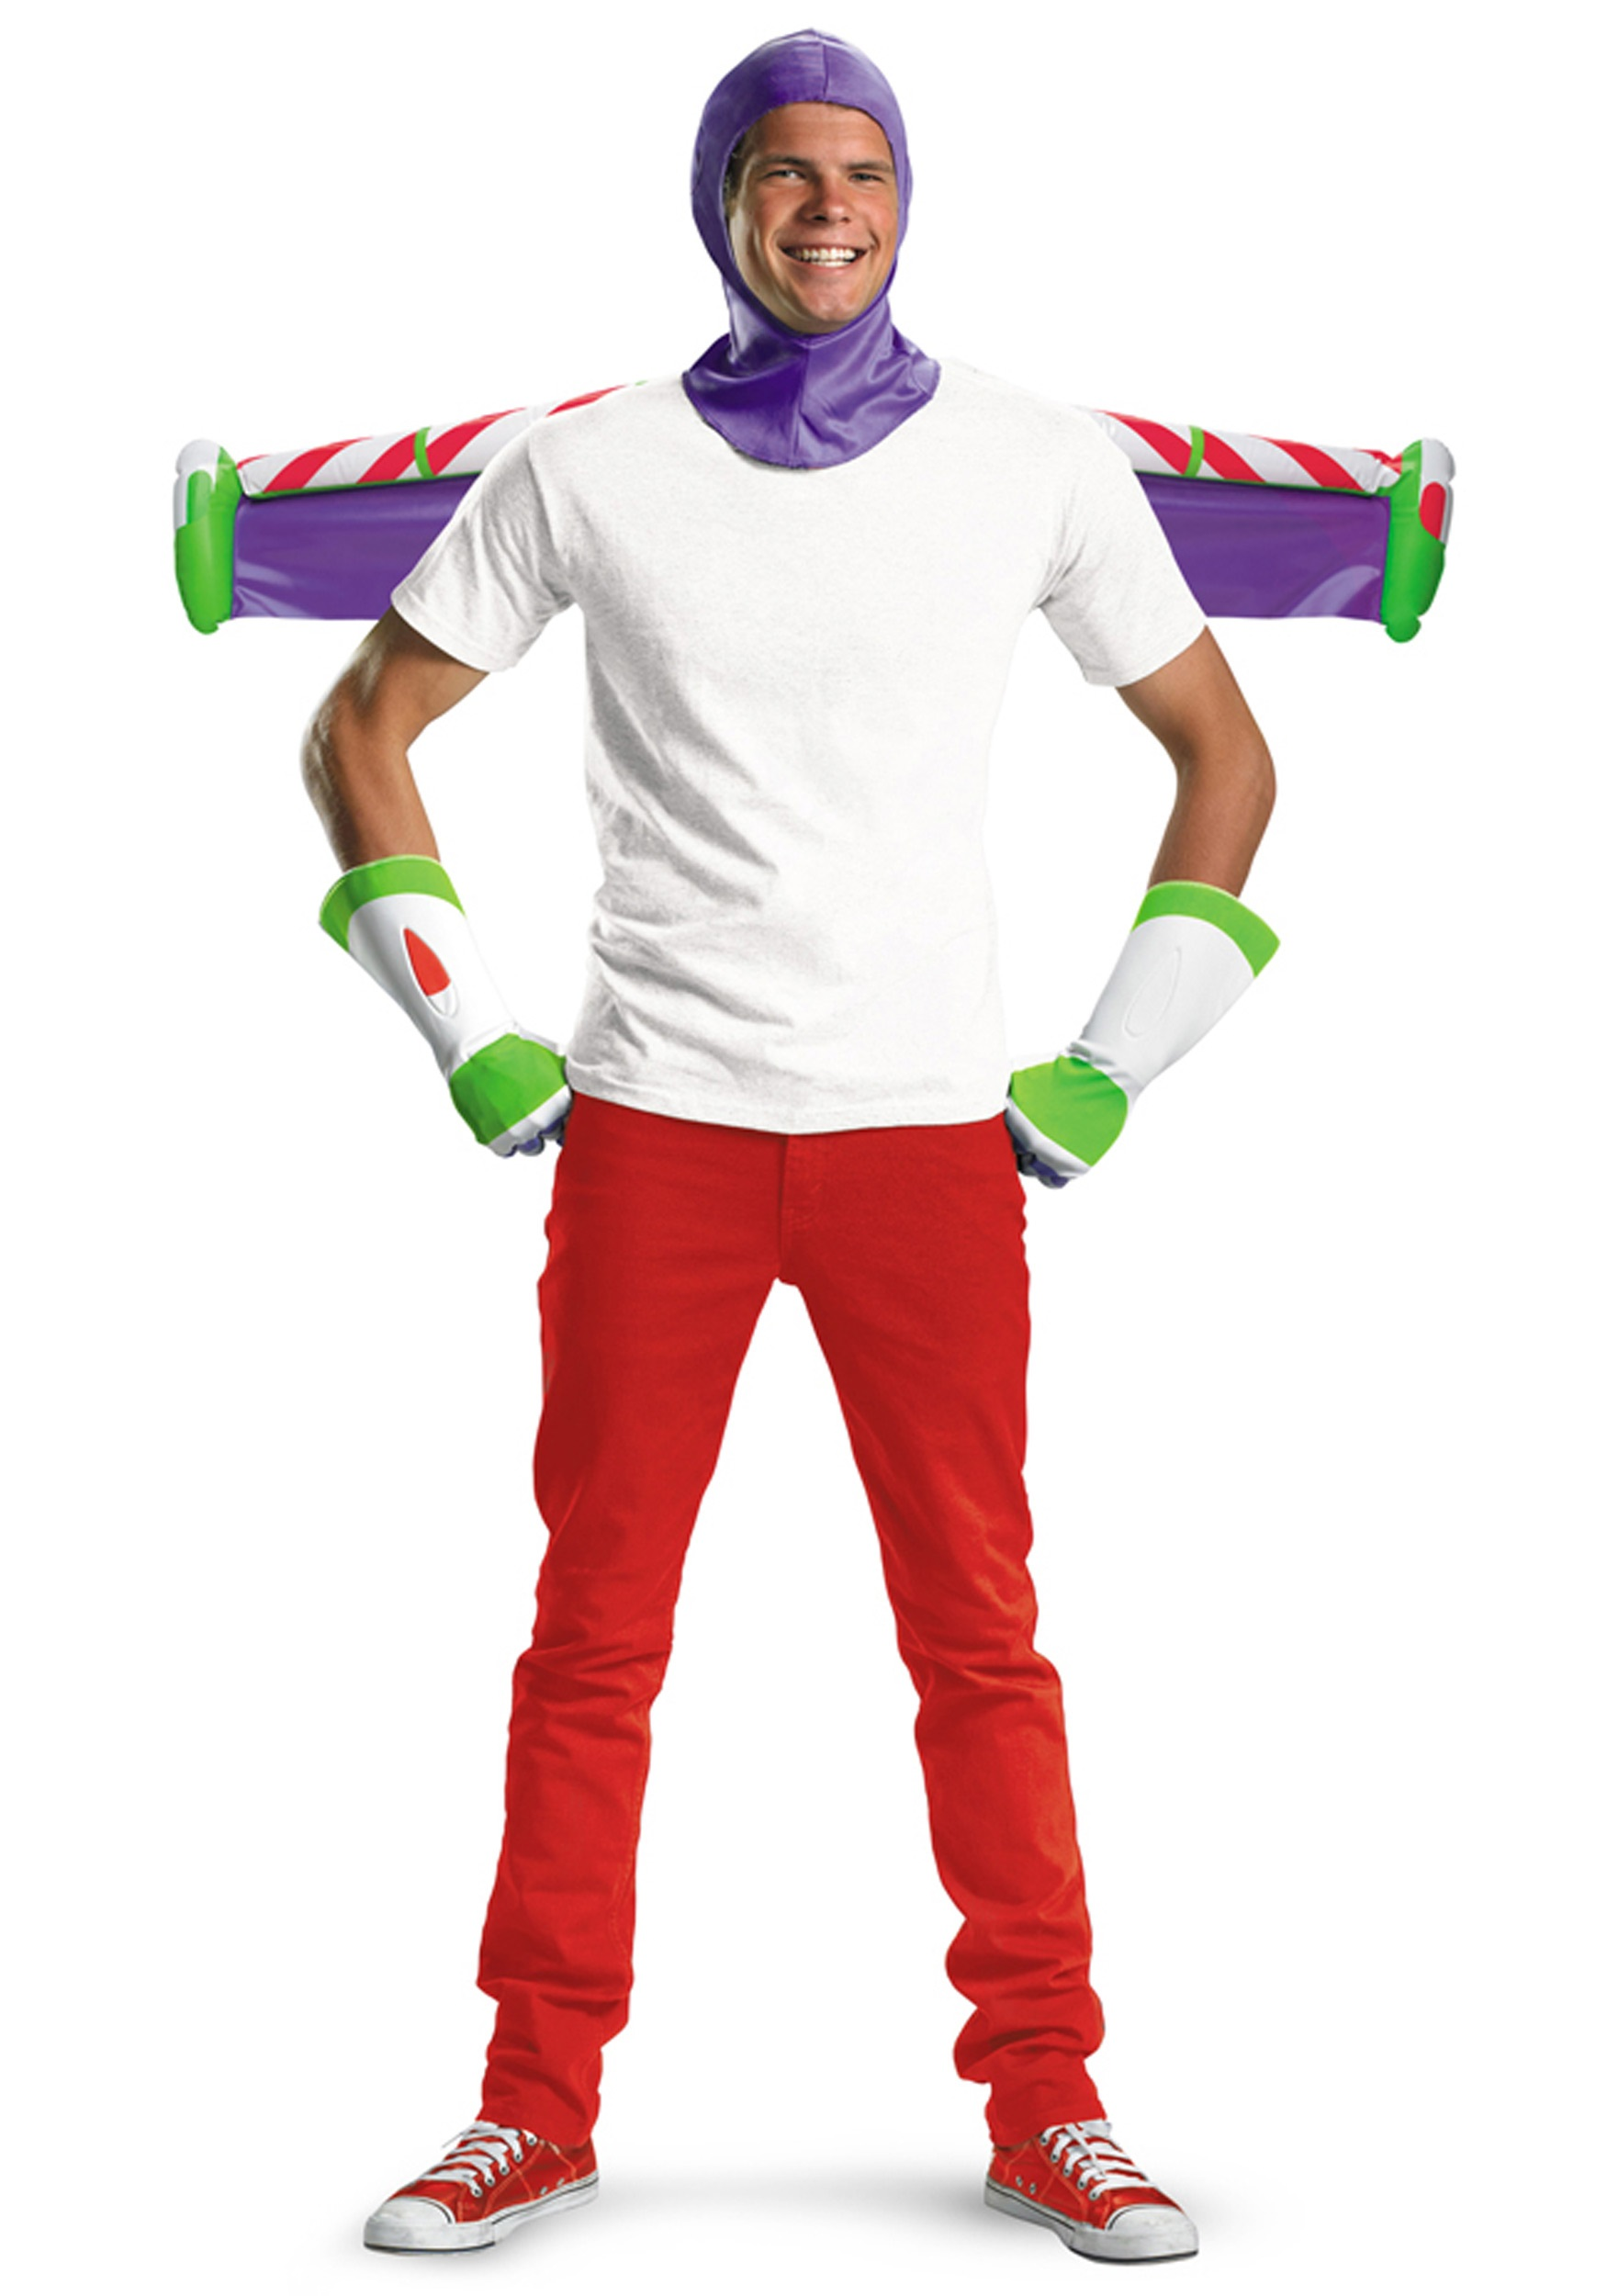 Adult Buzz Lightyear Costume Kit  sc 1 st  Halloween Costumes UK & Toy Story Costumes - Adult Kids Disney Halloween Costume